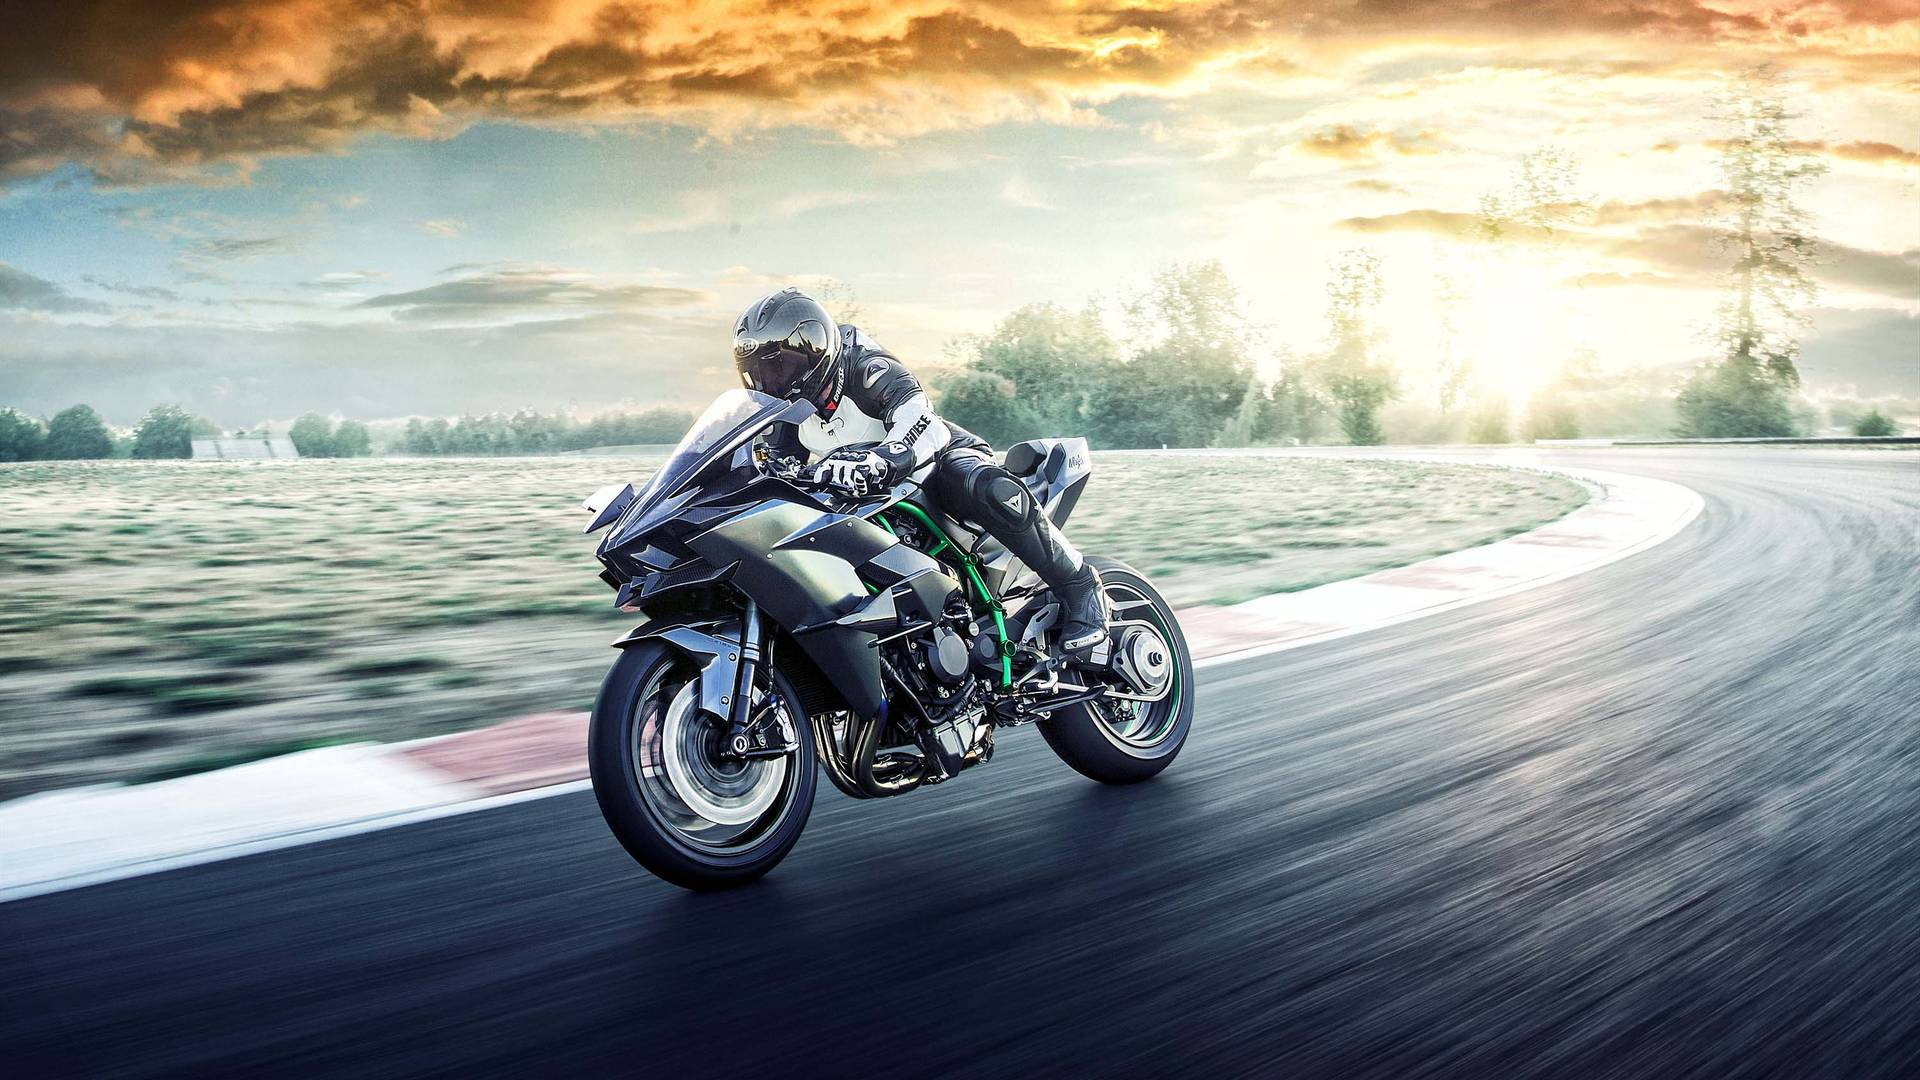 Kawasaki confirms the Ninja H2 power figures!